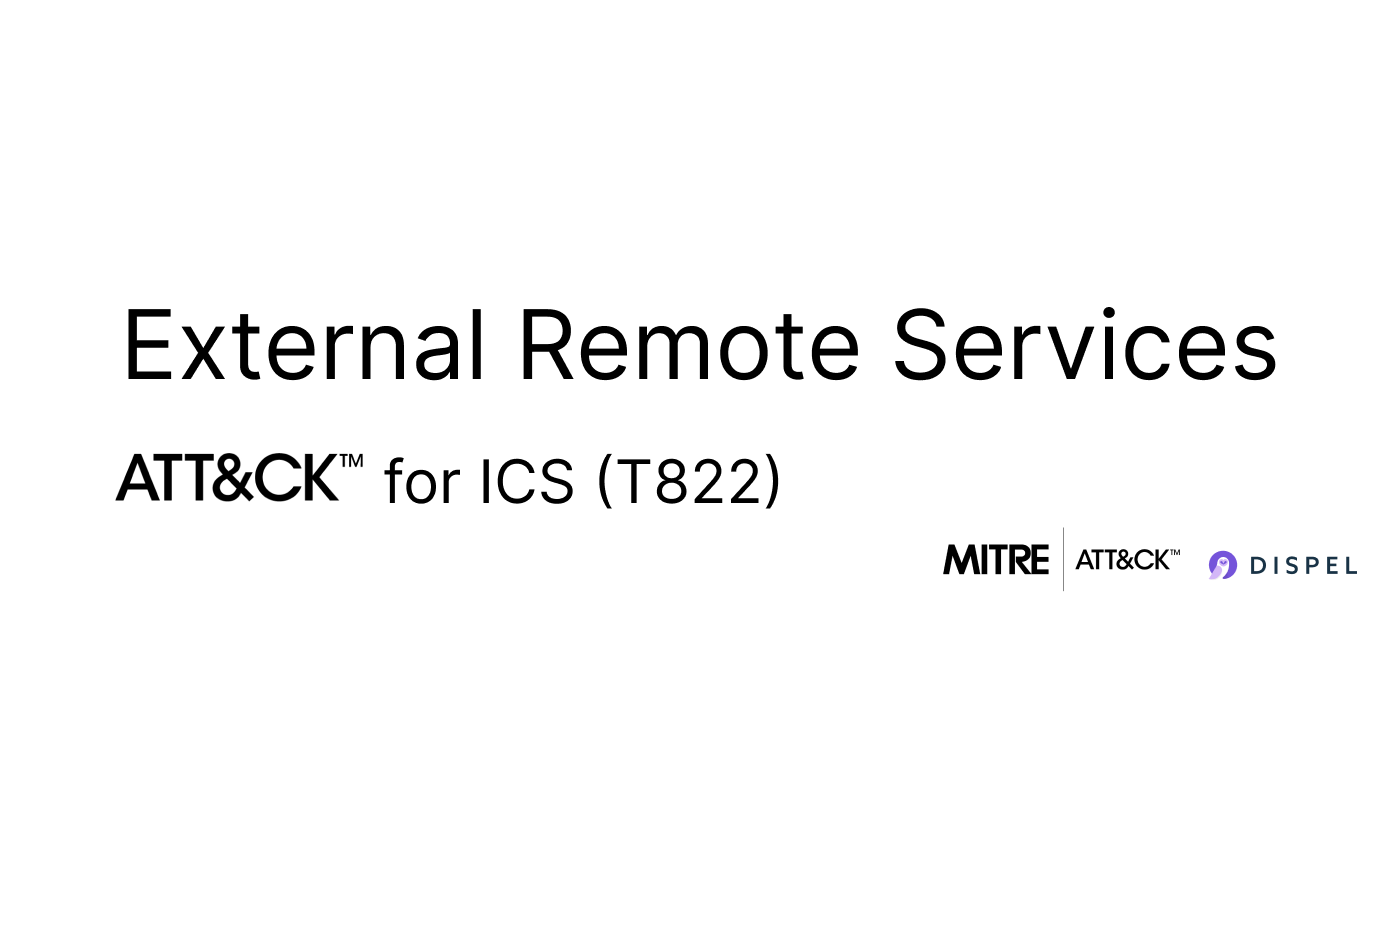 MITRE Att&ck for ICS: External Remote Services